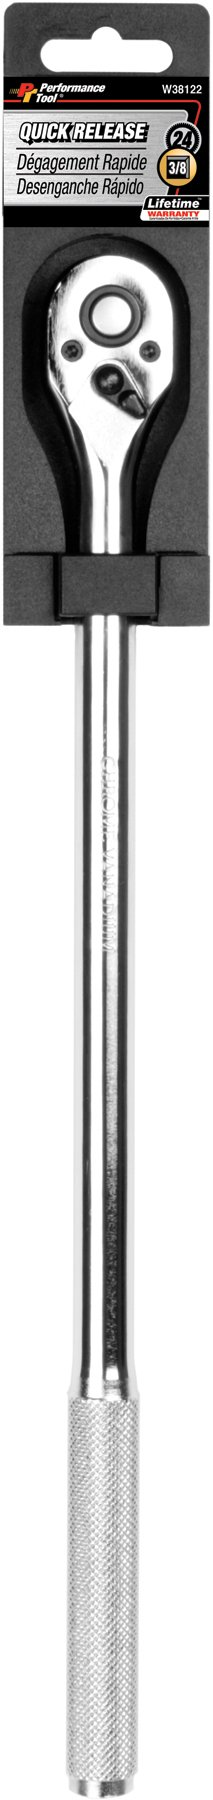 Performance Tool W38122 3/8-Inch Drive Quick Release Tear Drop Ratchet by Performance Tool